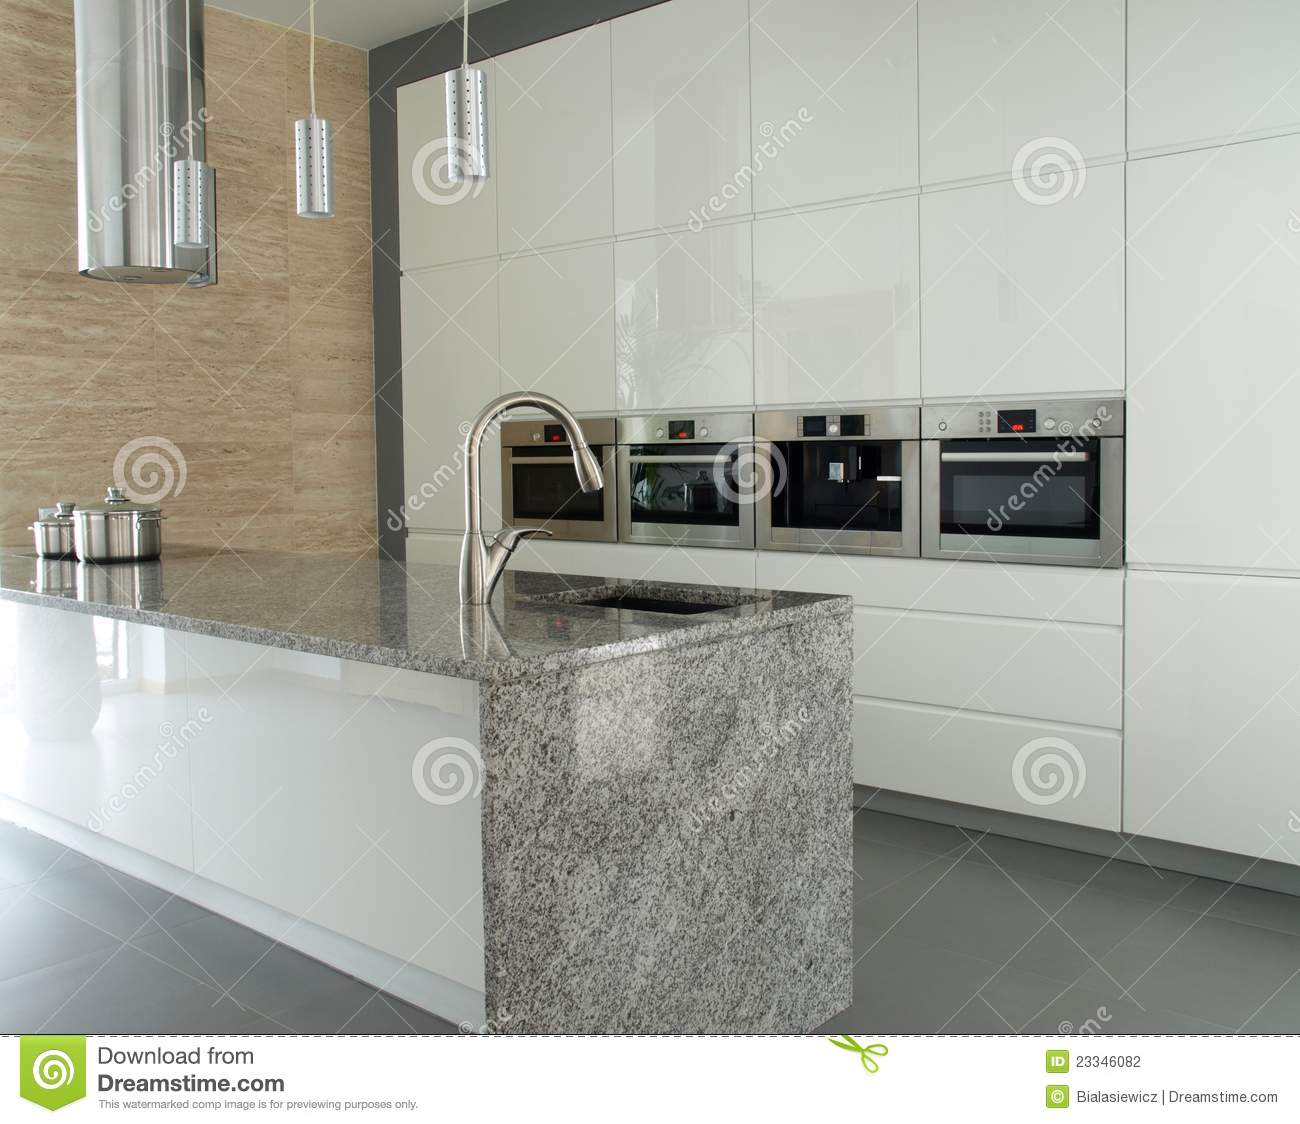 Kitchen Modern Granite modern kitchen with granite countertop stock photography - image